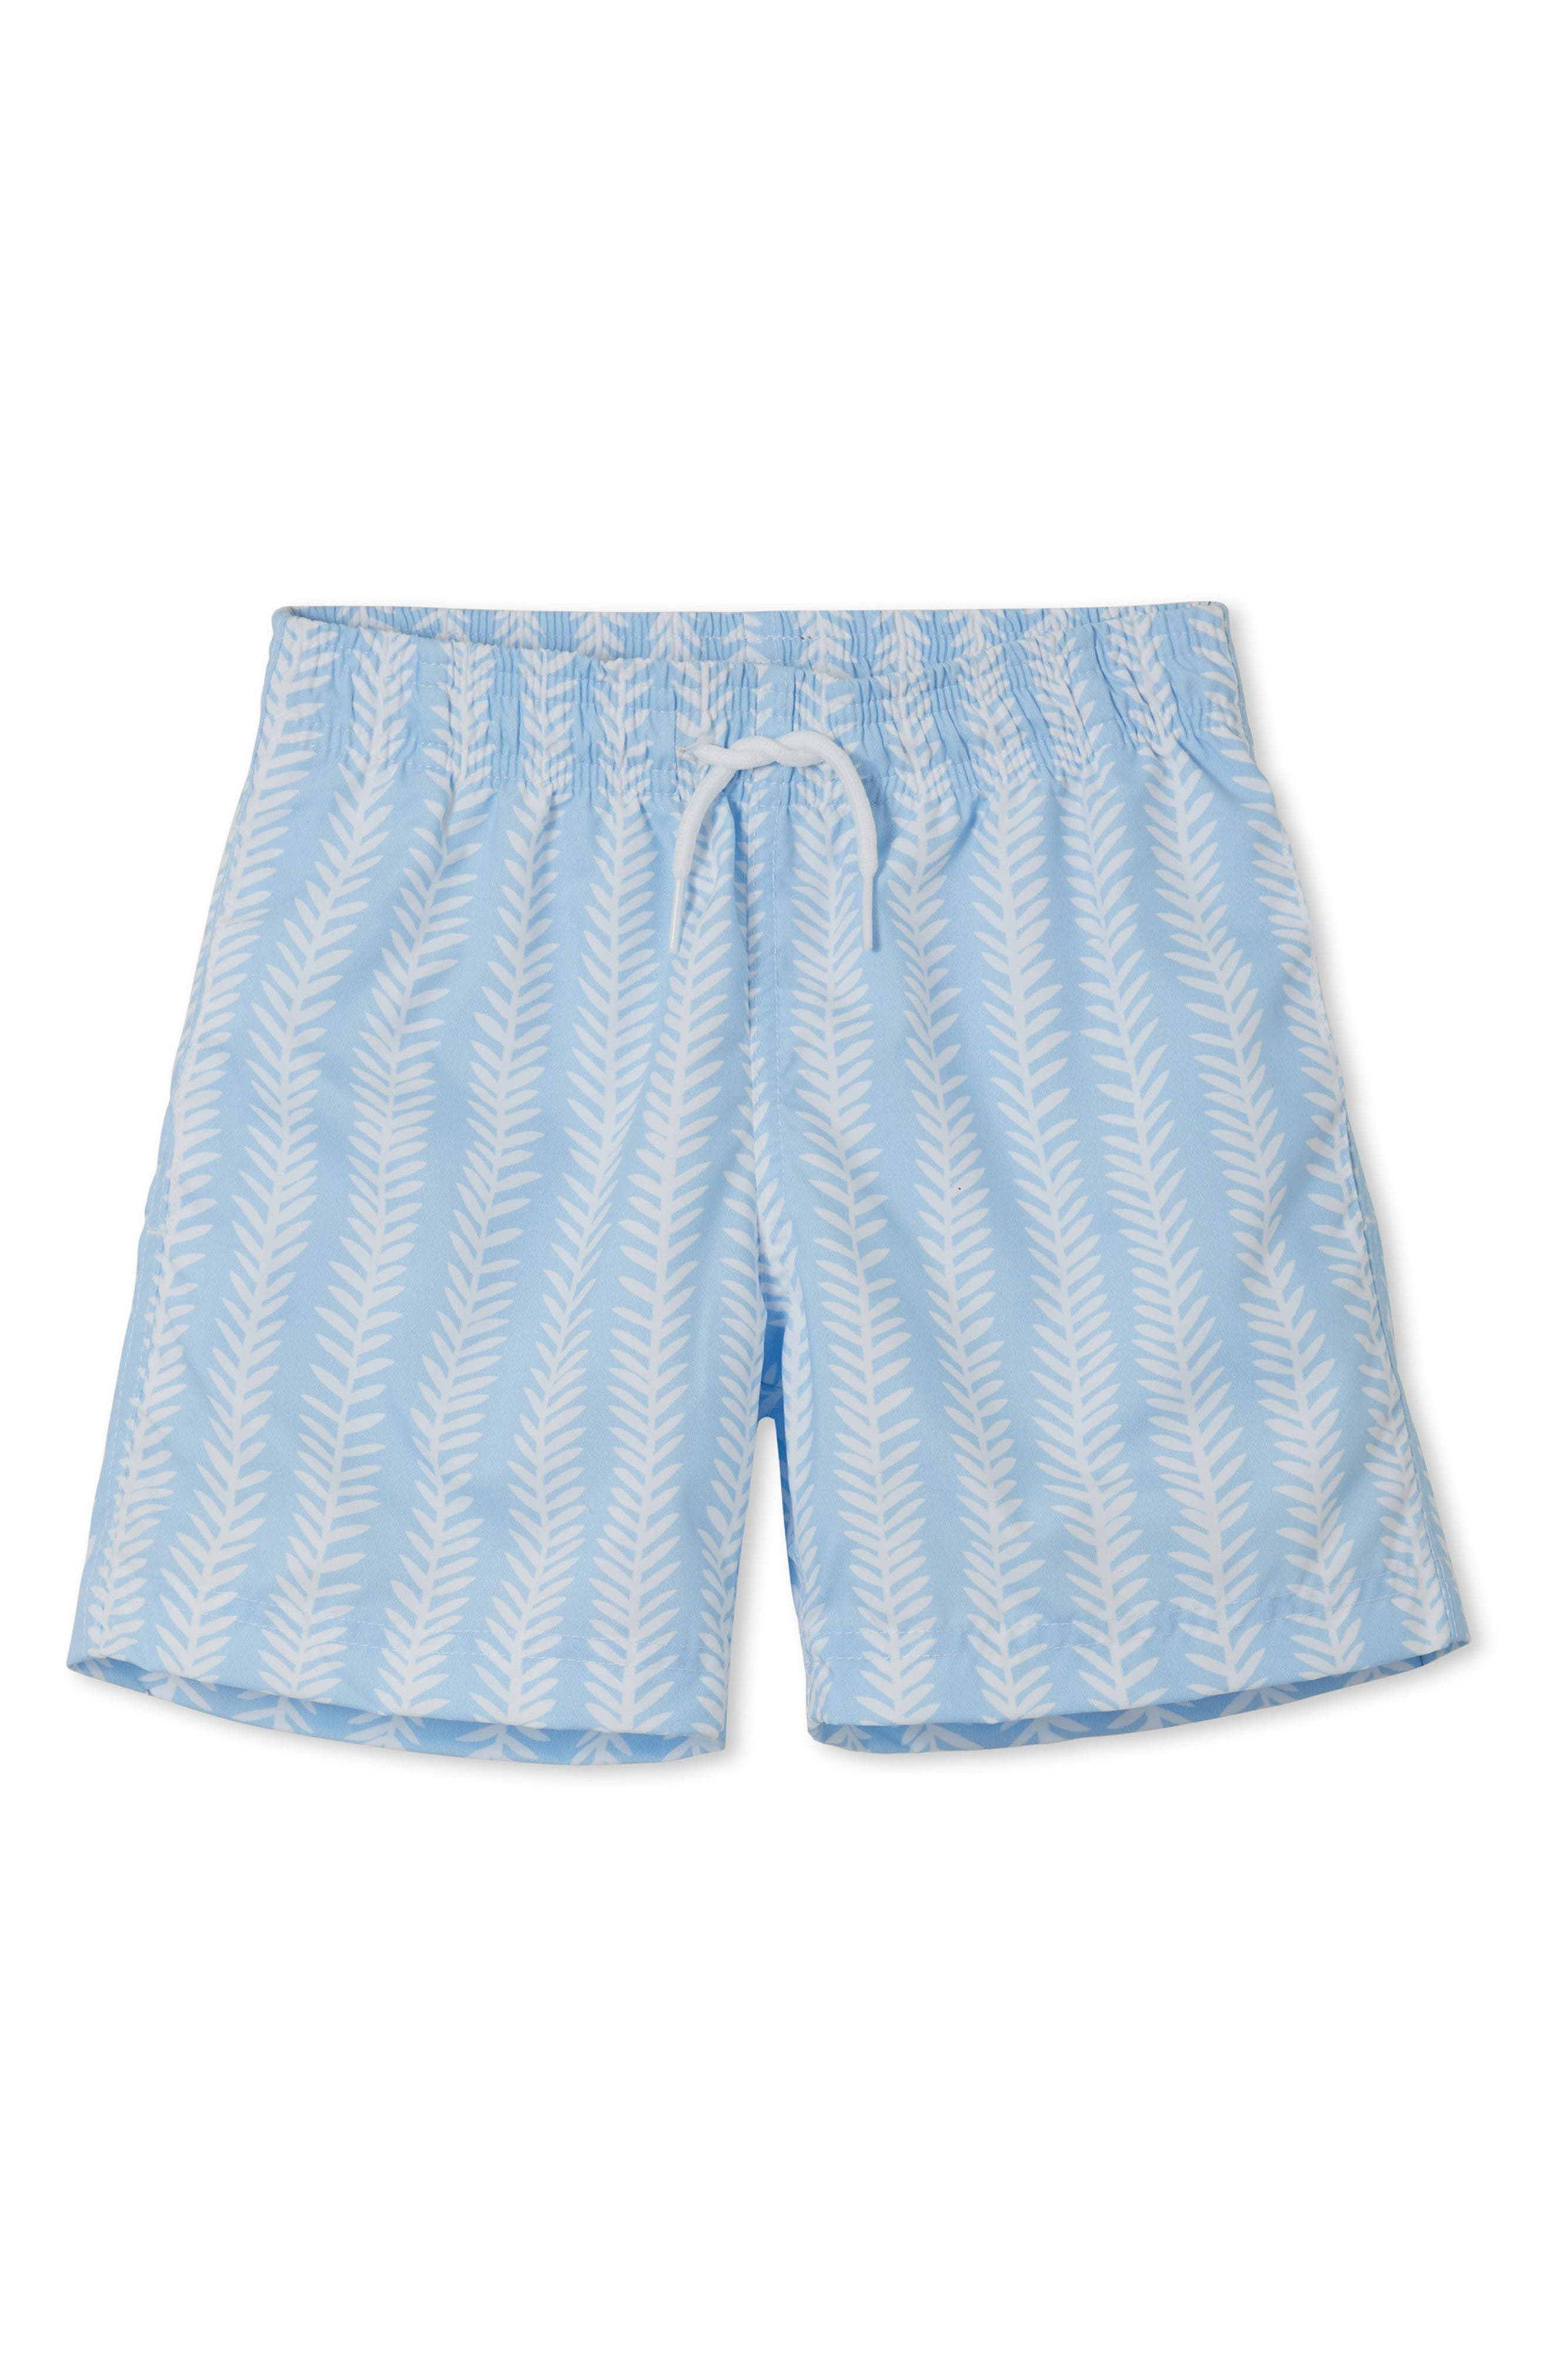 Coral Laurel Swim Trunks,                             Main thumbnail 1, color,                             Blue